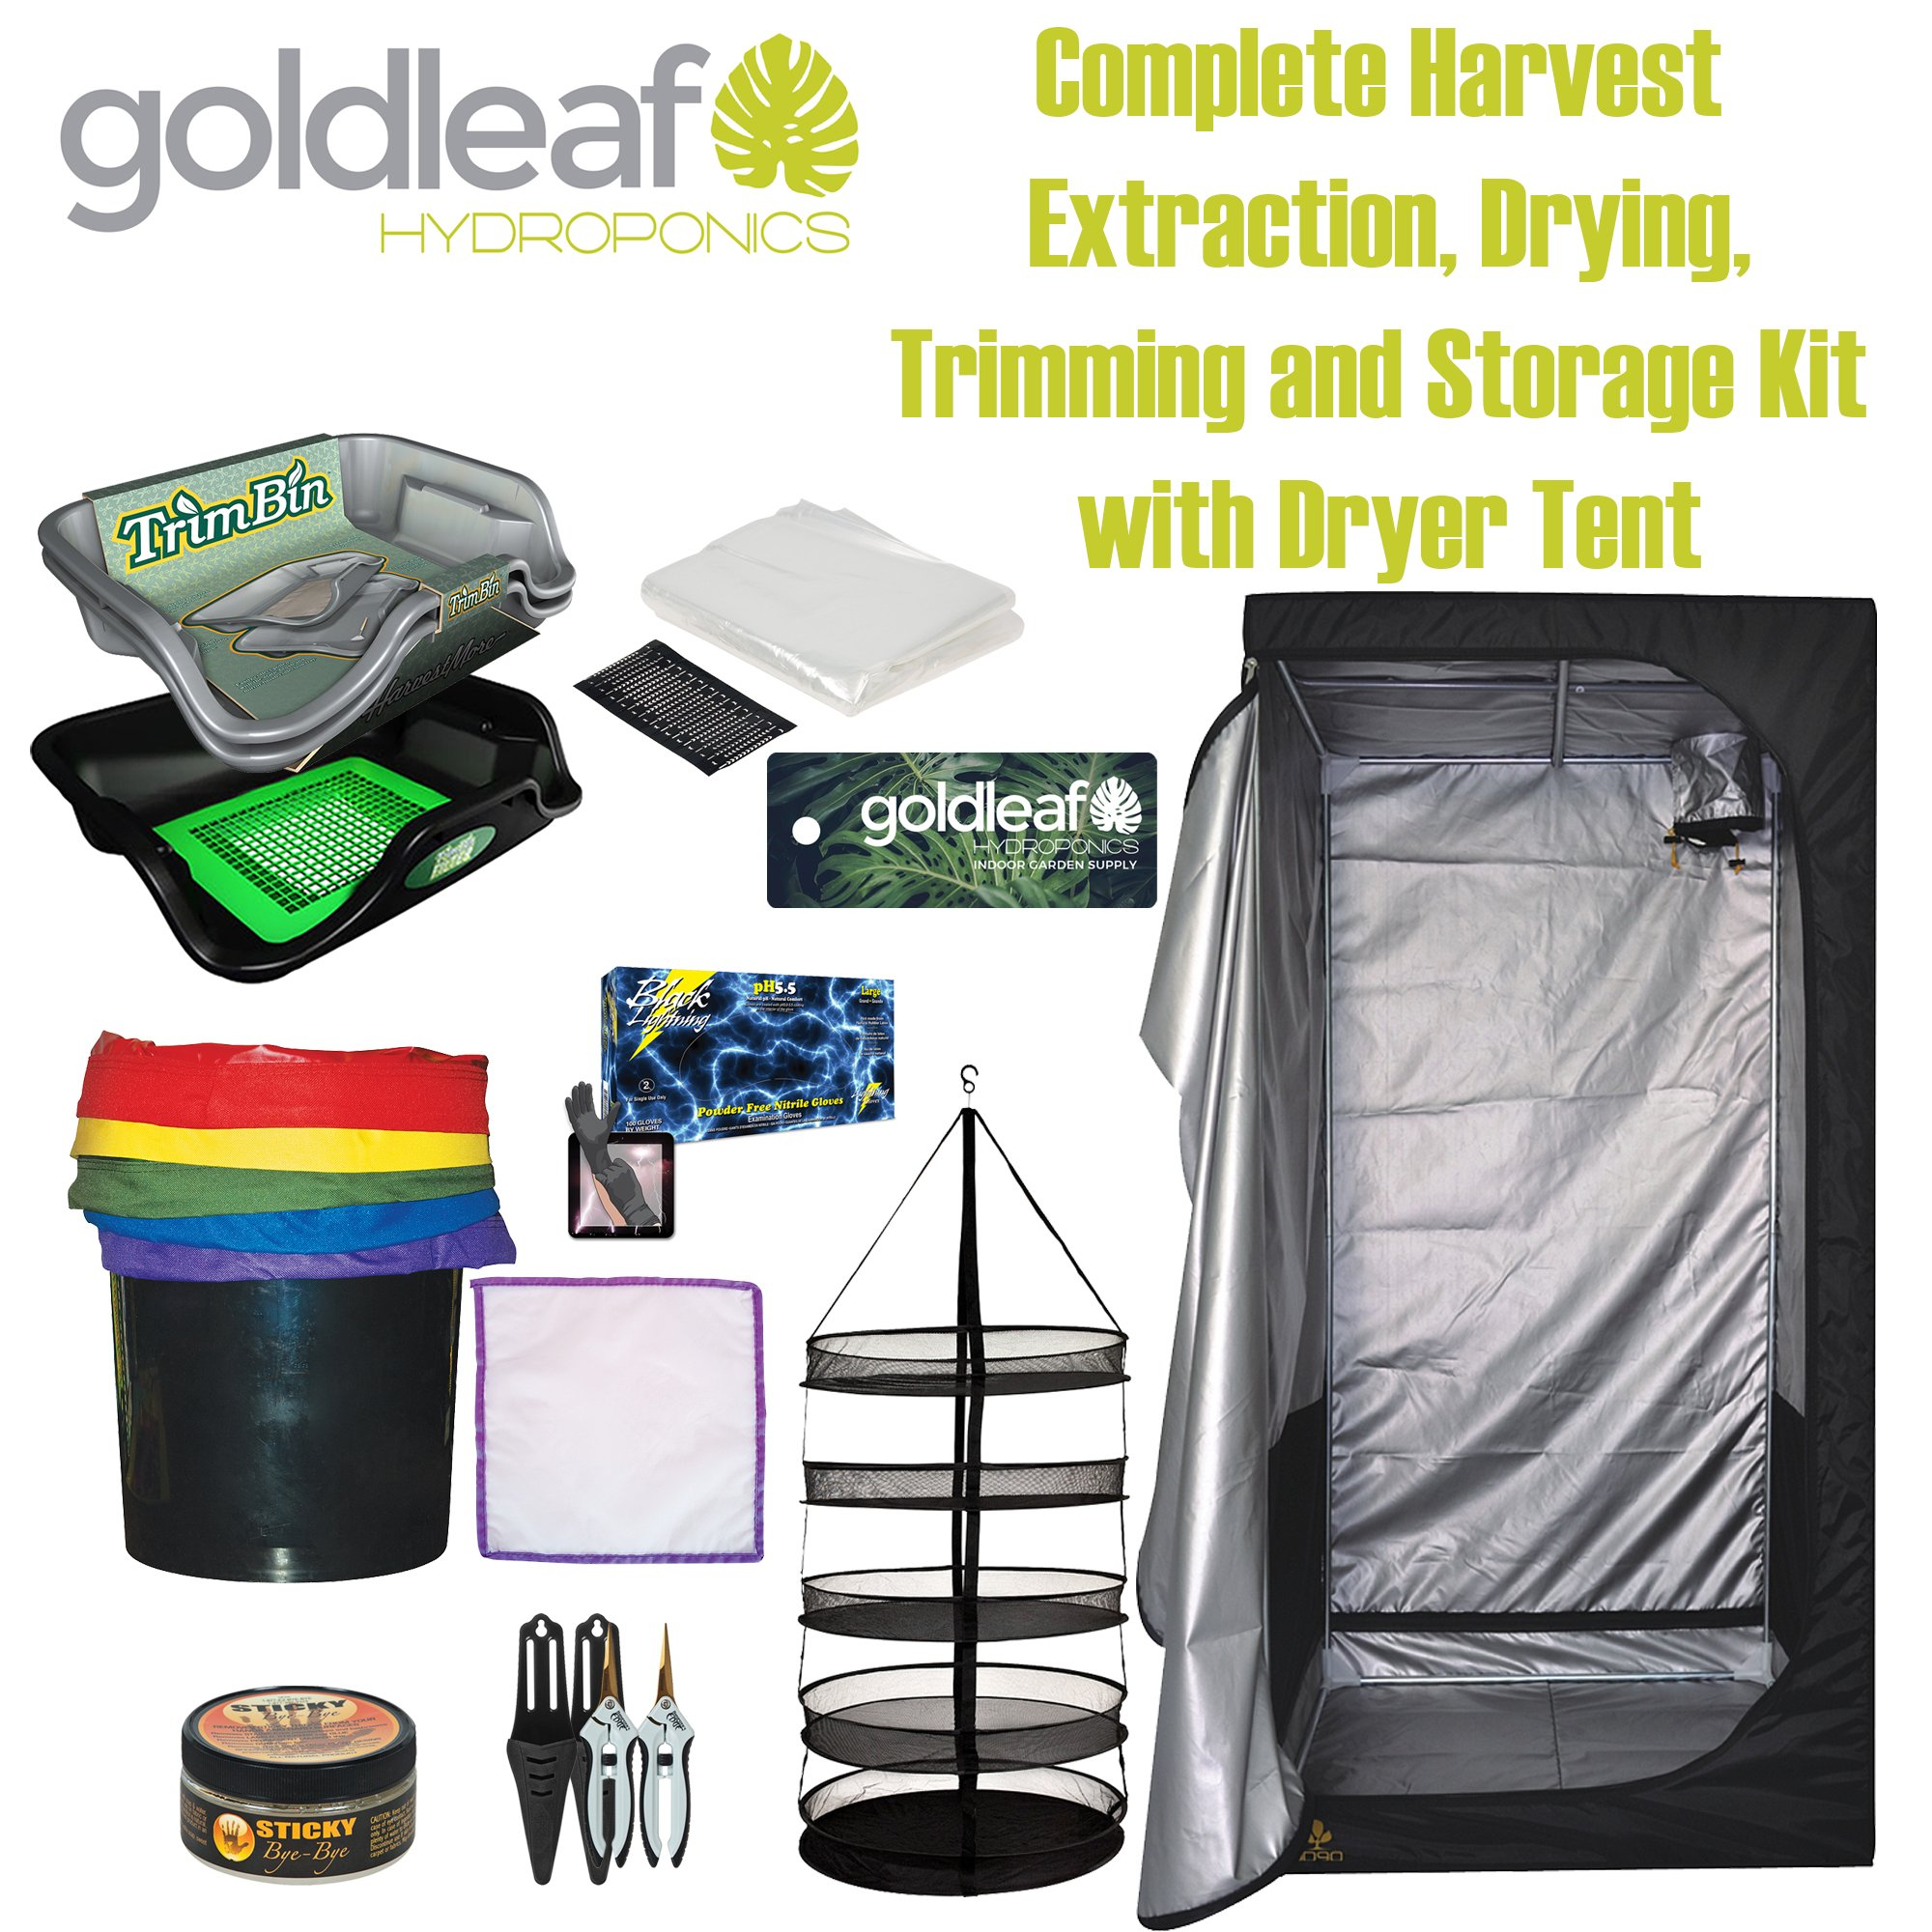 Big Harvest Essential Oil Extraction, Flower Bud Trimming, Drying & Storage Kit with DarkDryer Tent by Goldleaf Hydroponics